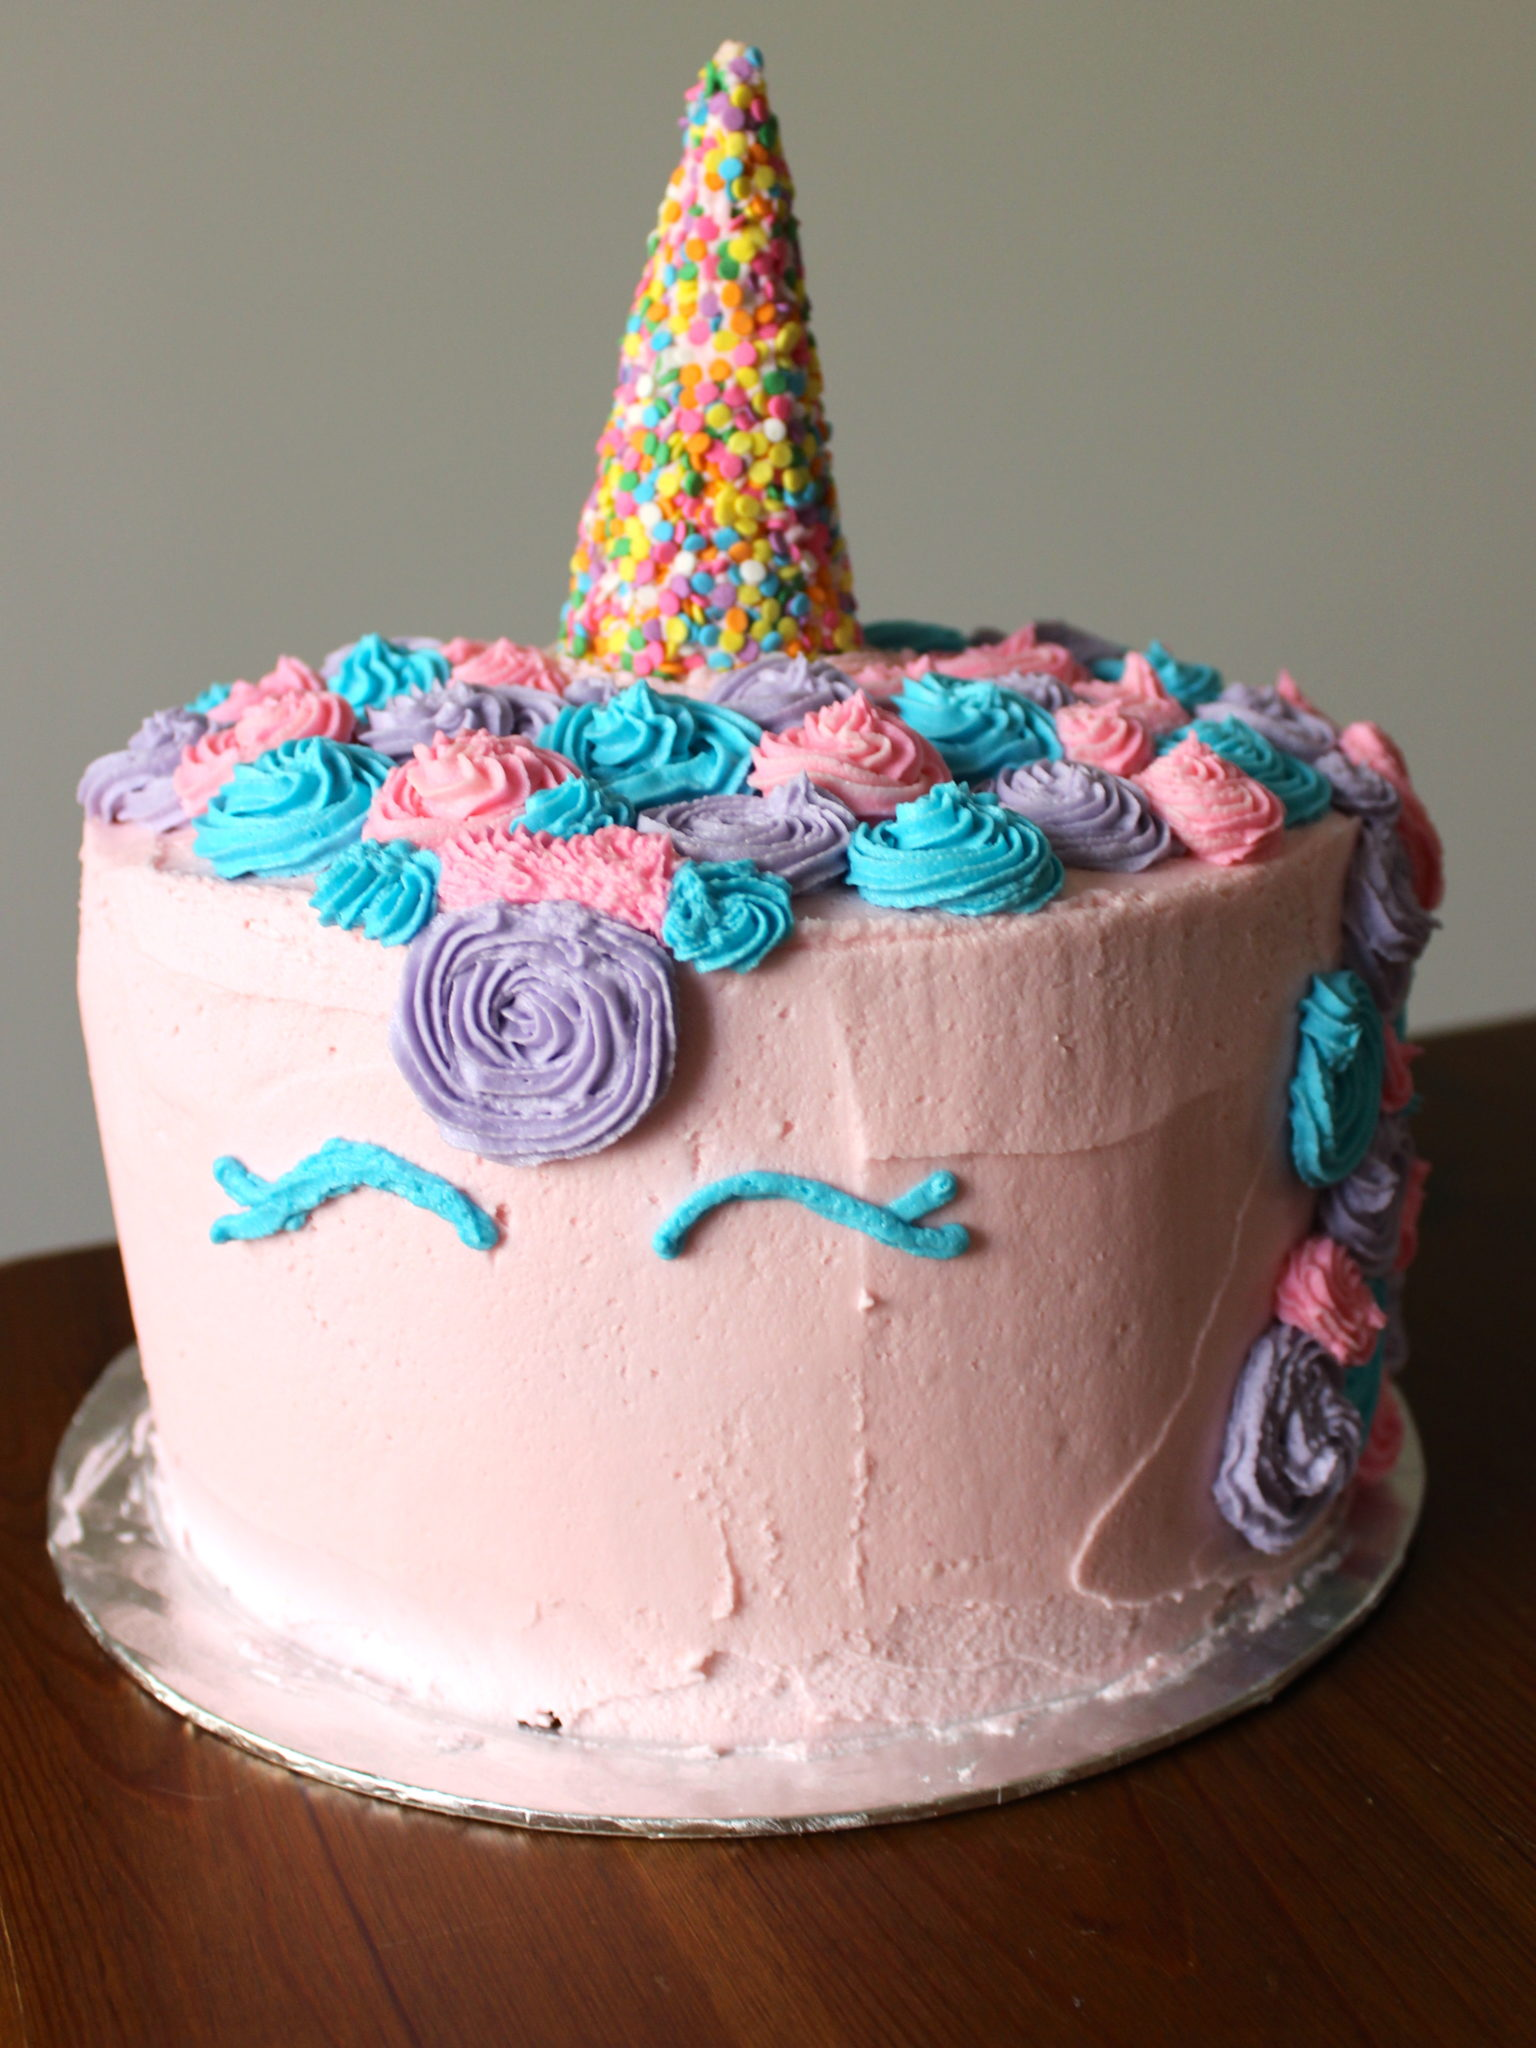 Cake Decorating Without Fondant : How to make a unicorn cake   without fondant ...